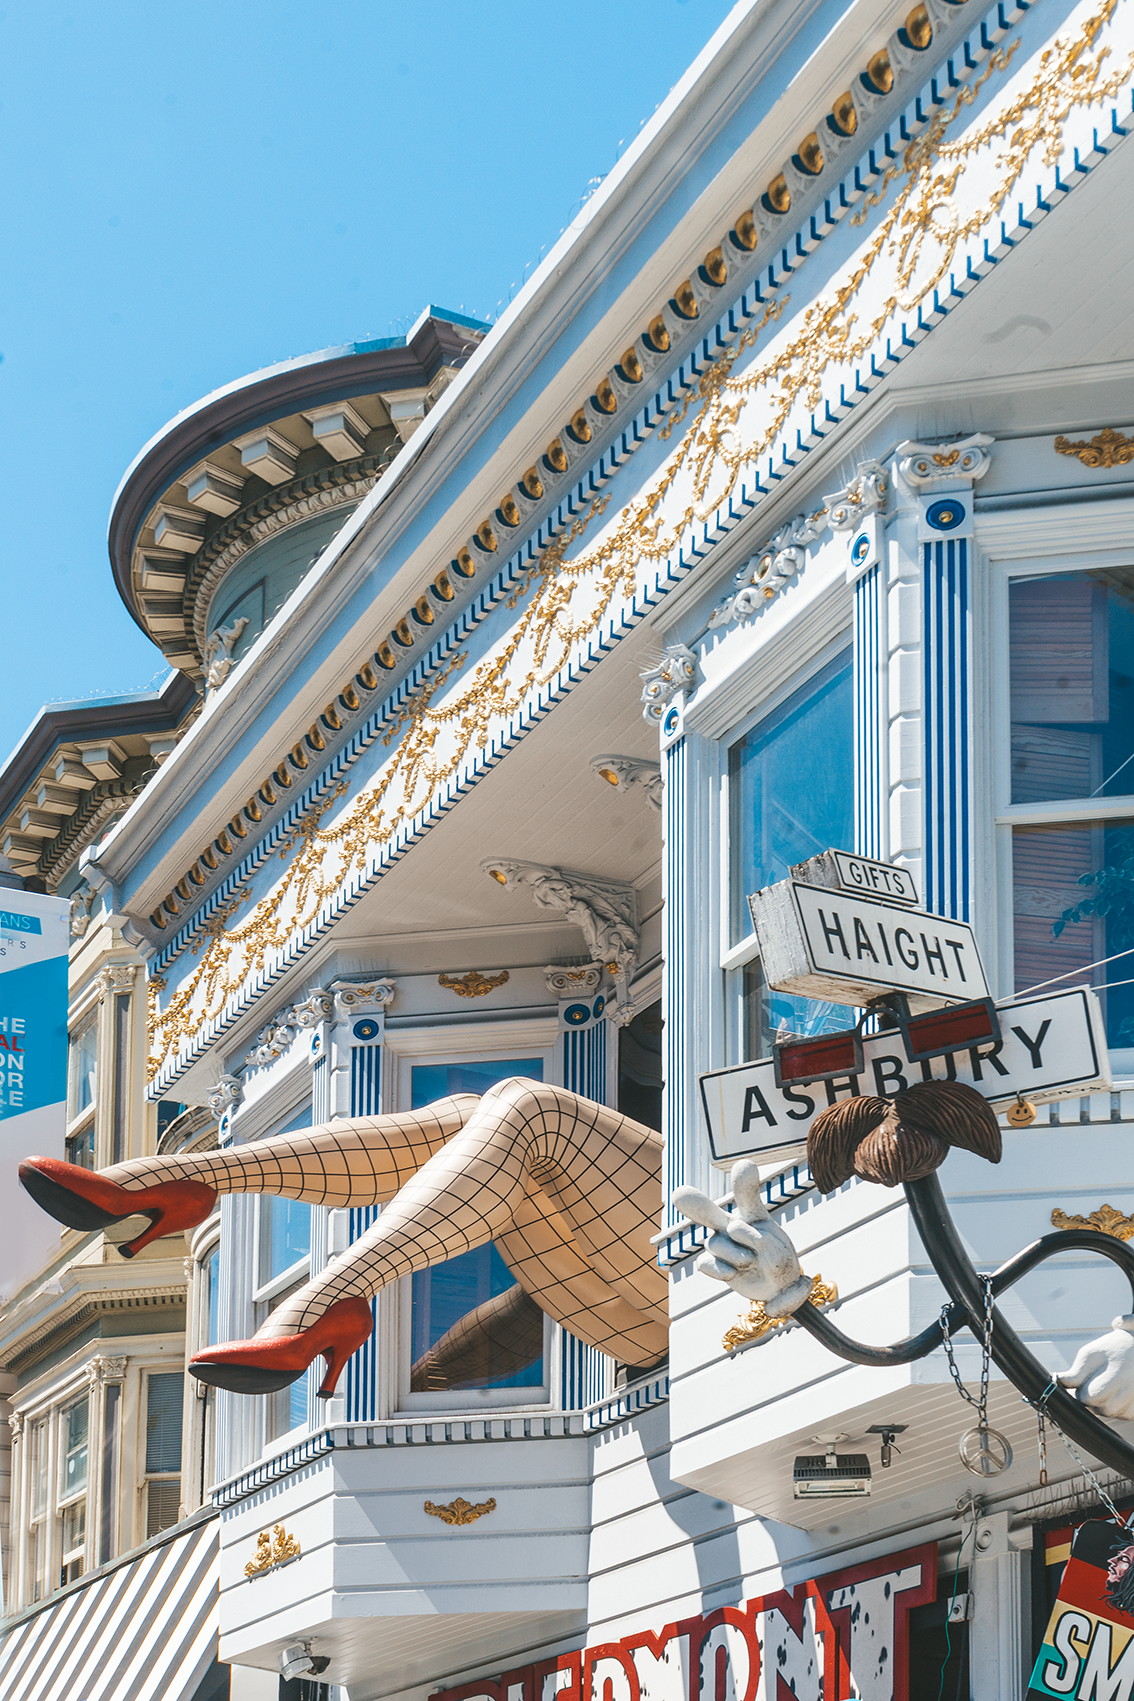 1 10 most instagrammable places in San Francisco you don't have to miss!